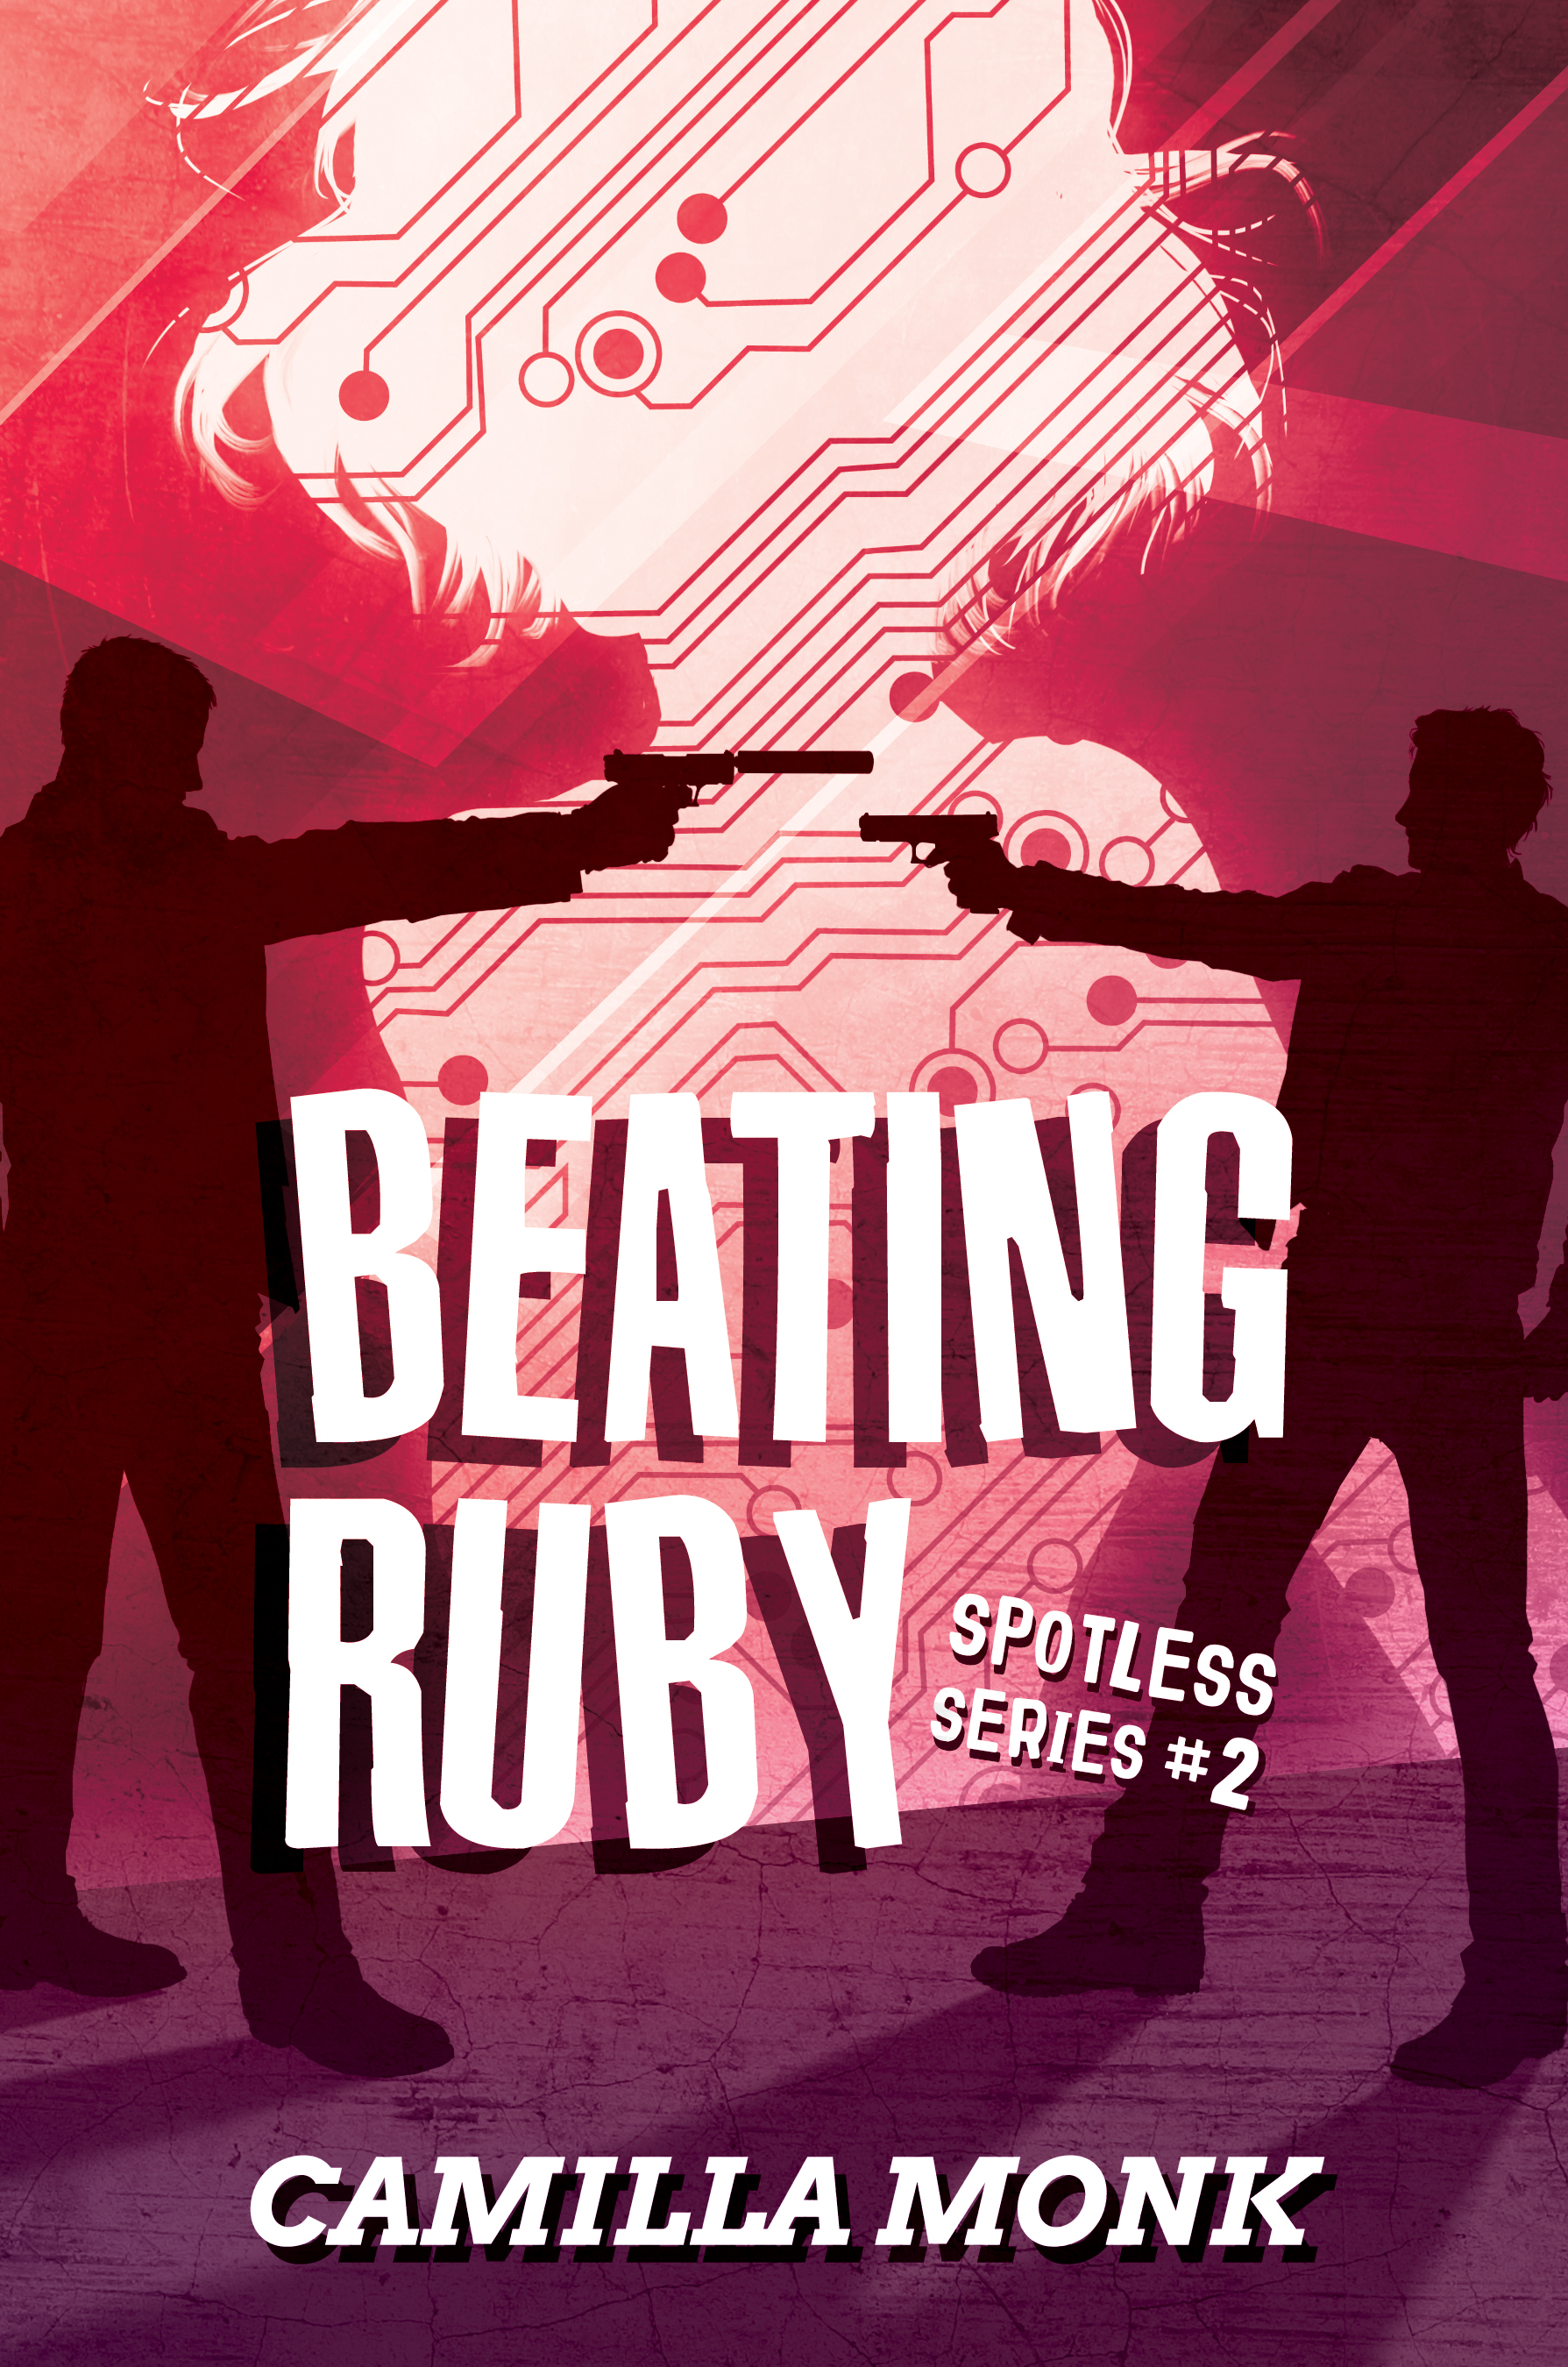 Beating Ruby (Spotless #2)